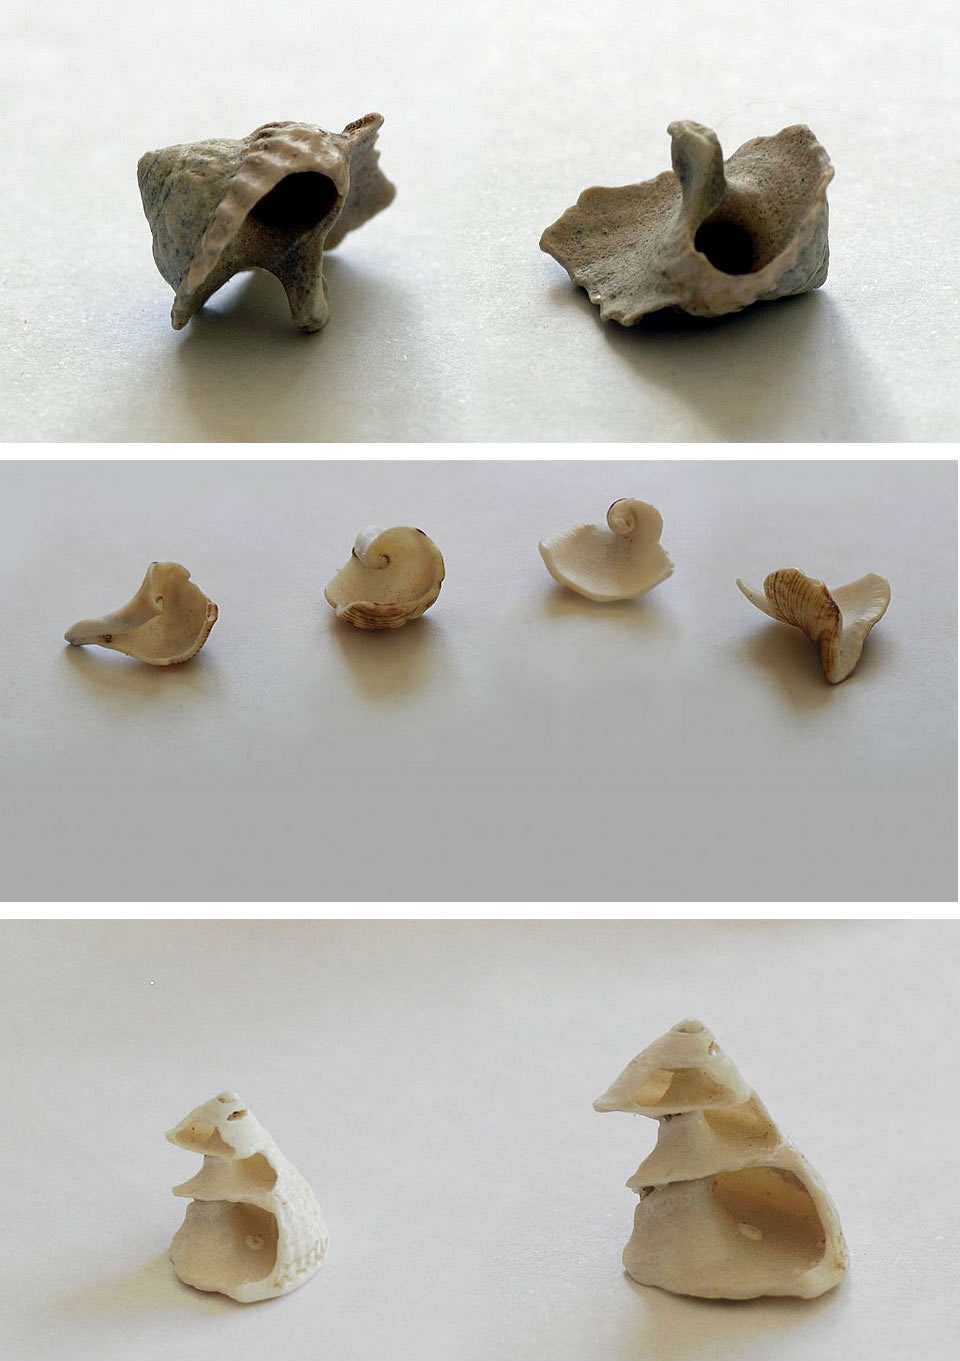 Photographs of shells by Amiria Gale